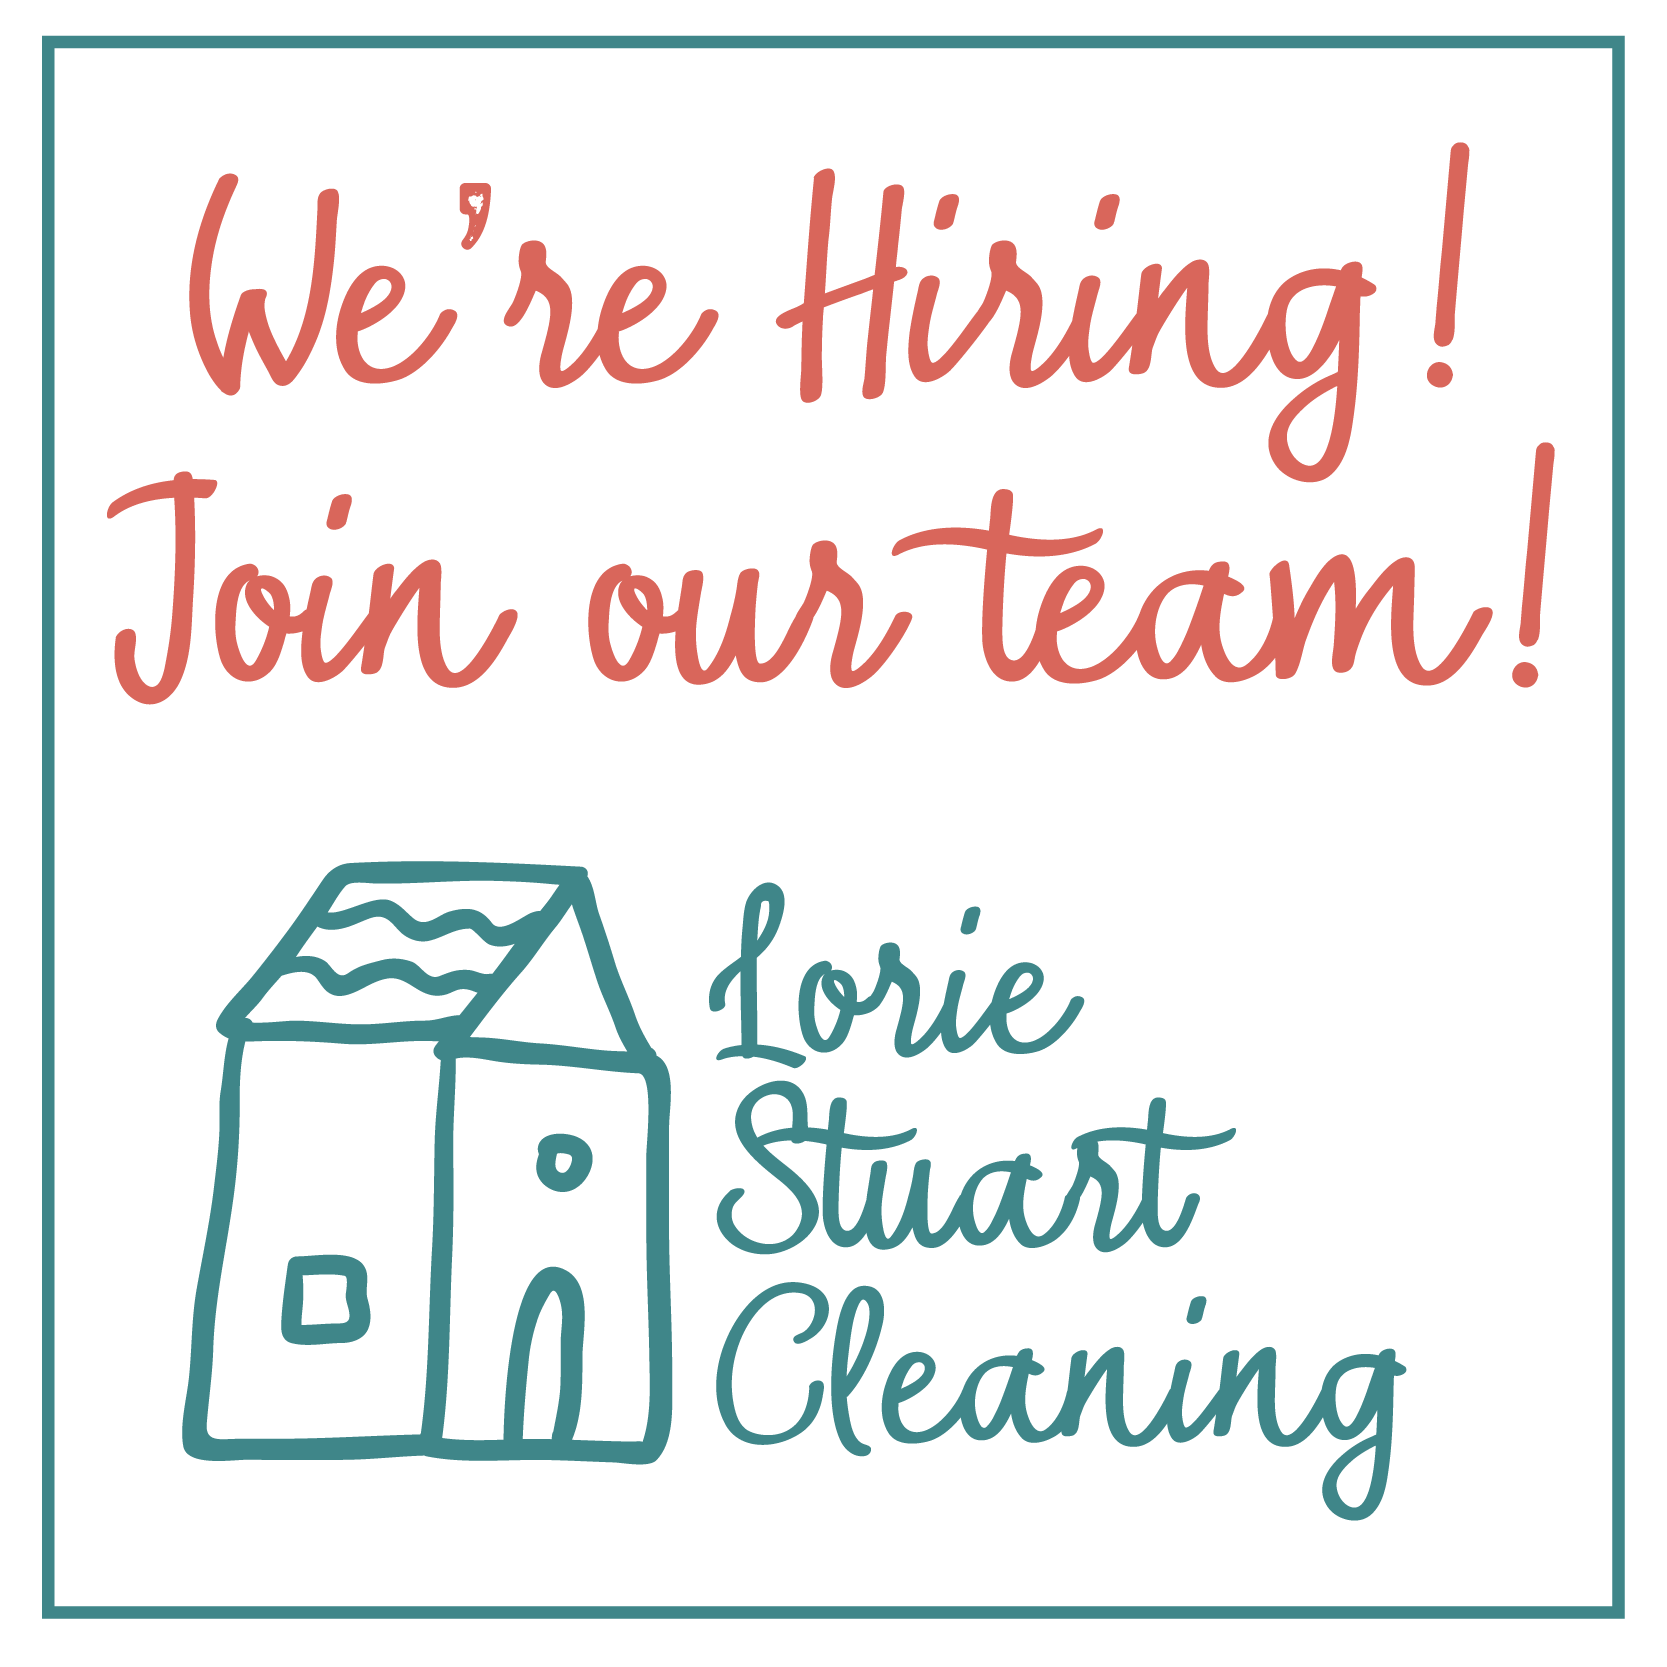 Lorie Stuart Cleaning Job Ad.png